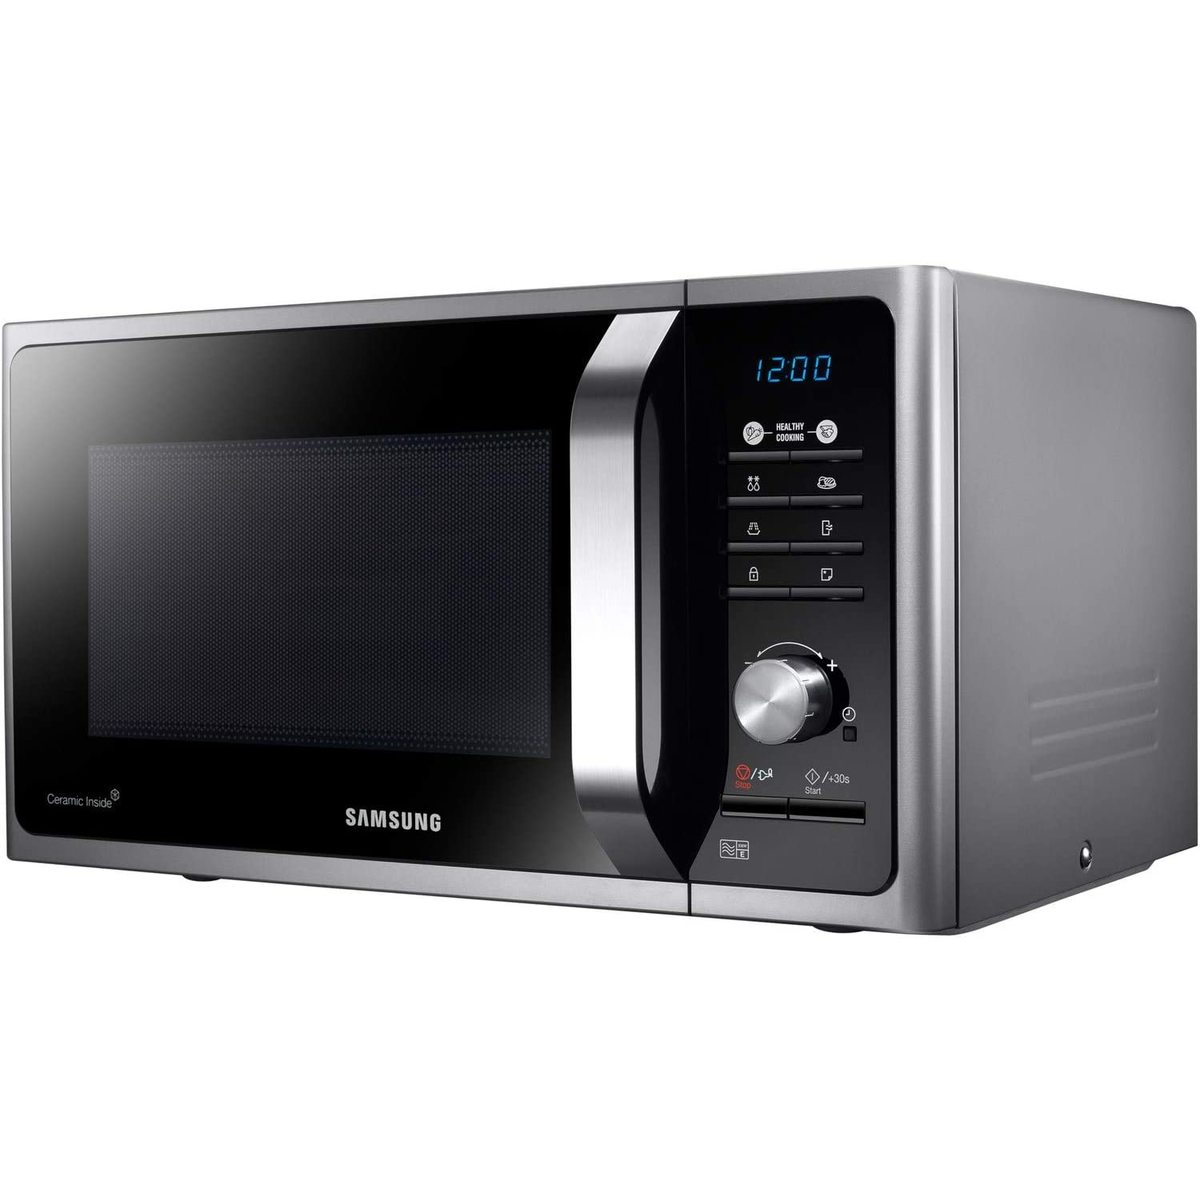 Image of Samsung MS23F301TAS 23L 800W Solo Microwave Oven